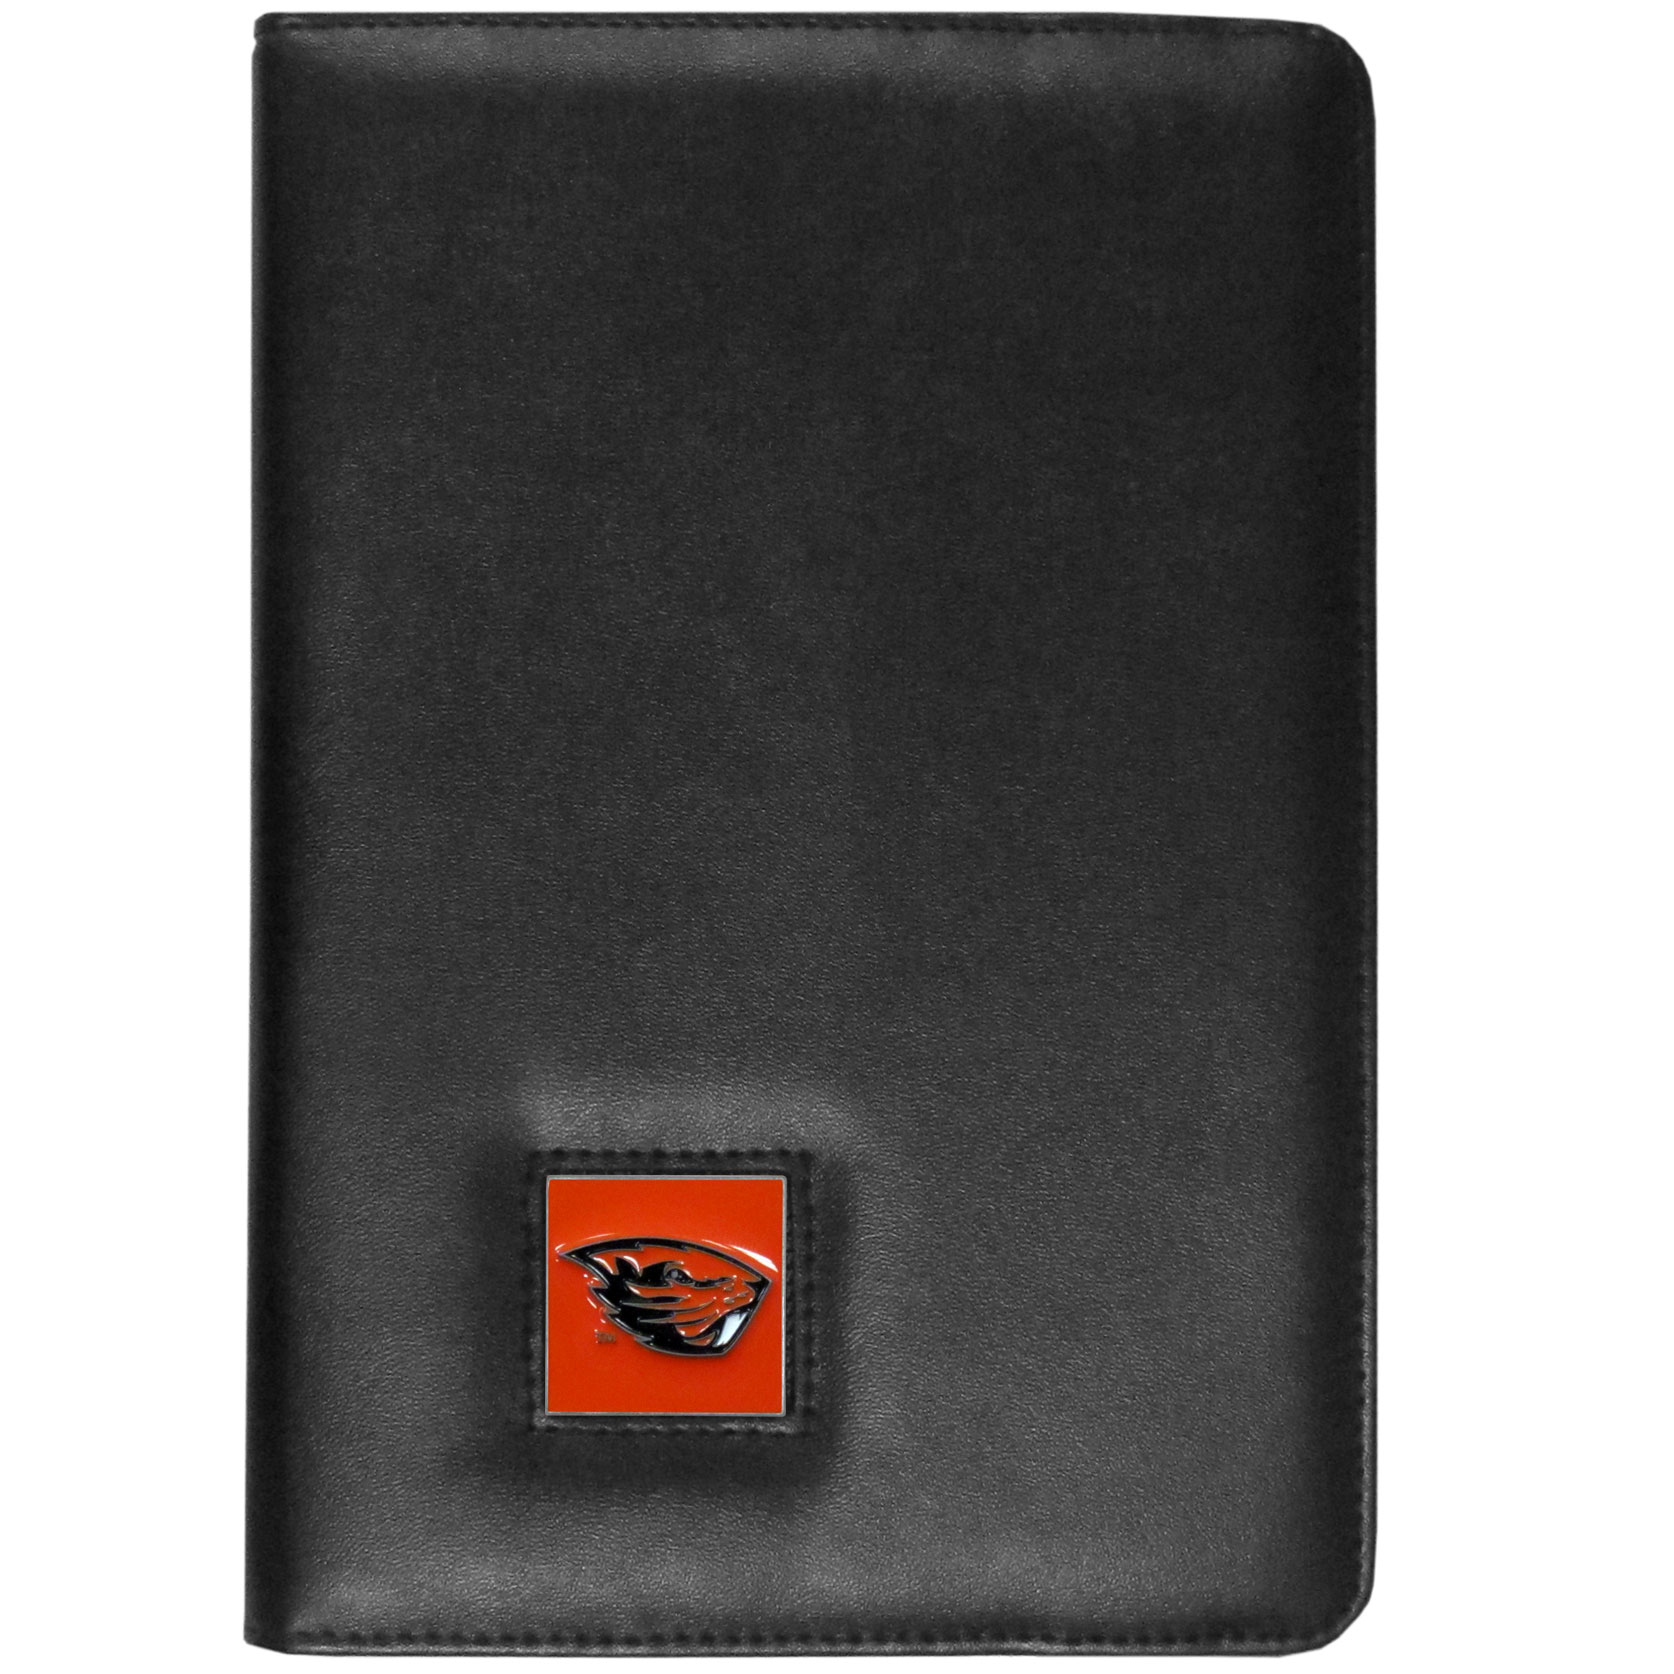 Oregon St. Beavers iPad Mini Folio Case - The perfect iPad mini accessory. The iPad mini slides easily into the inner sleeve that allows complete accessibility to all of the devices features and is the protected by the attractive out cover that can be secured closed or open while working with a simple stretch band. The great case features a cast and enameled Oregon St. Beavers emblem.